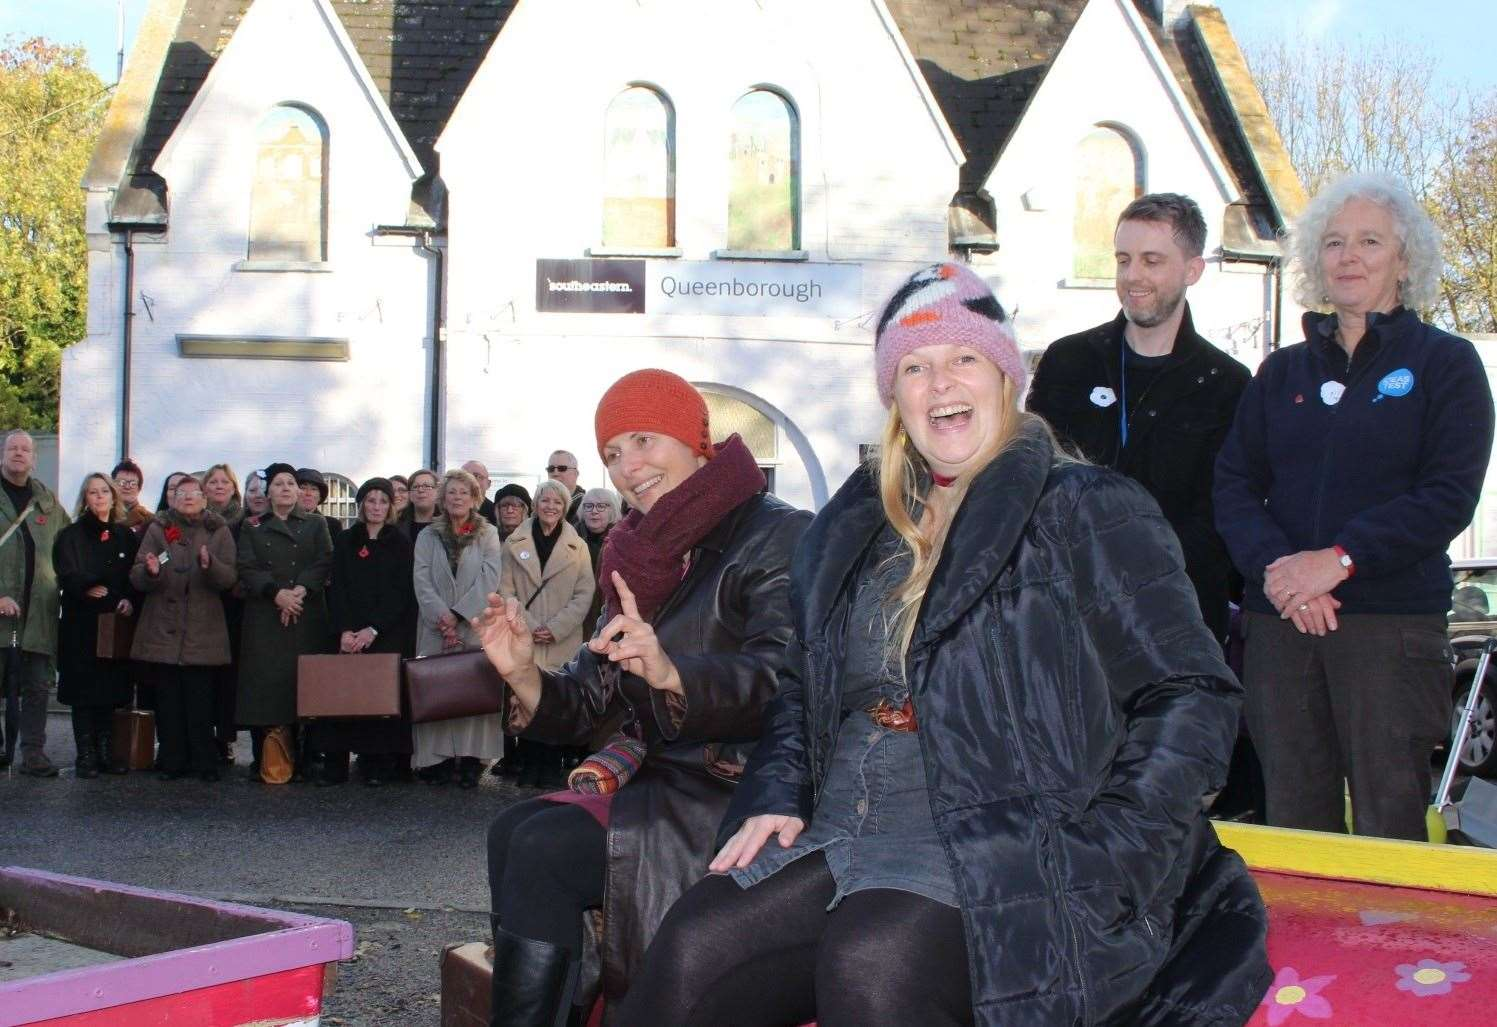 Tania Holland-Williams, left, and Emily Peasgood with Kevin Grist and Lucy Medhurst and the 55-plus choir at Queenborough railway station performing Never Again. Picture: John Nurden